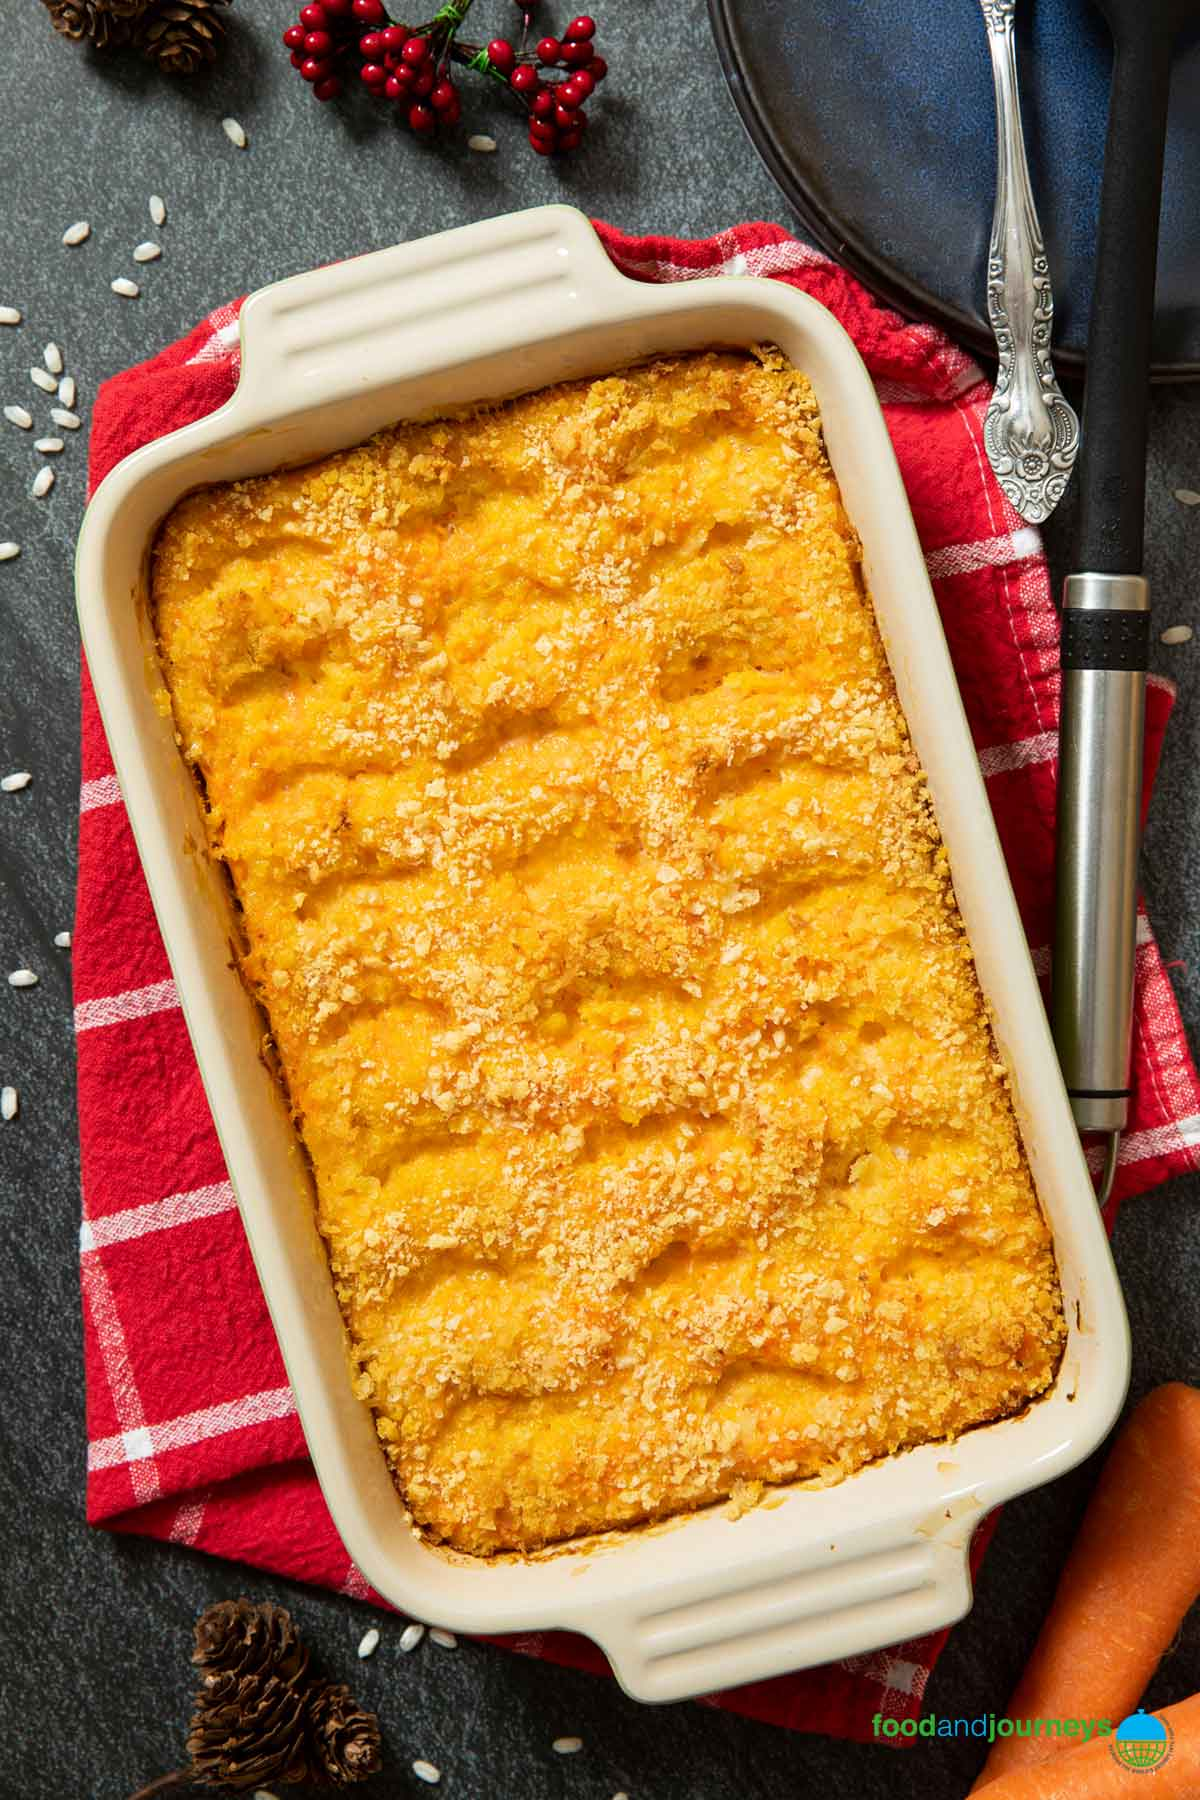 A classic carrot casserole from Finland; always served with baked ham on Christmas tables.